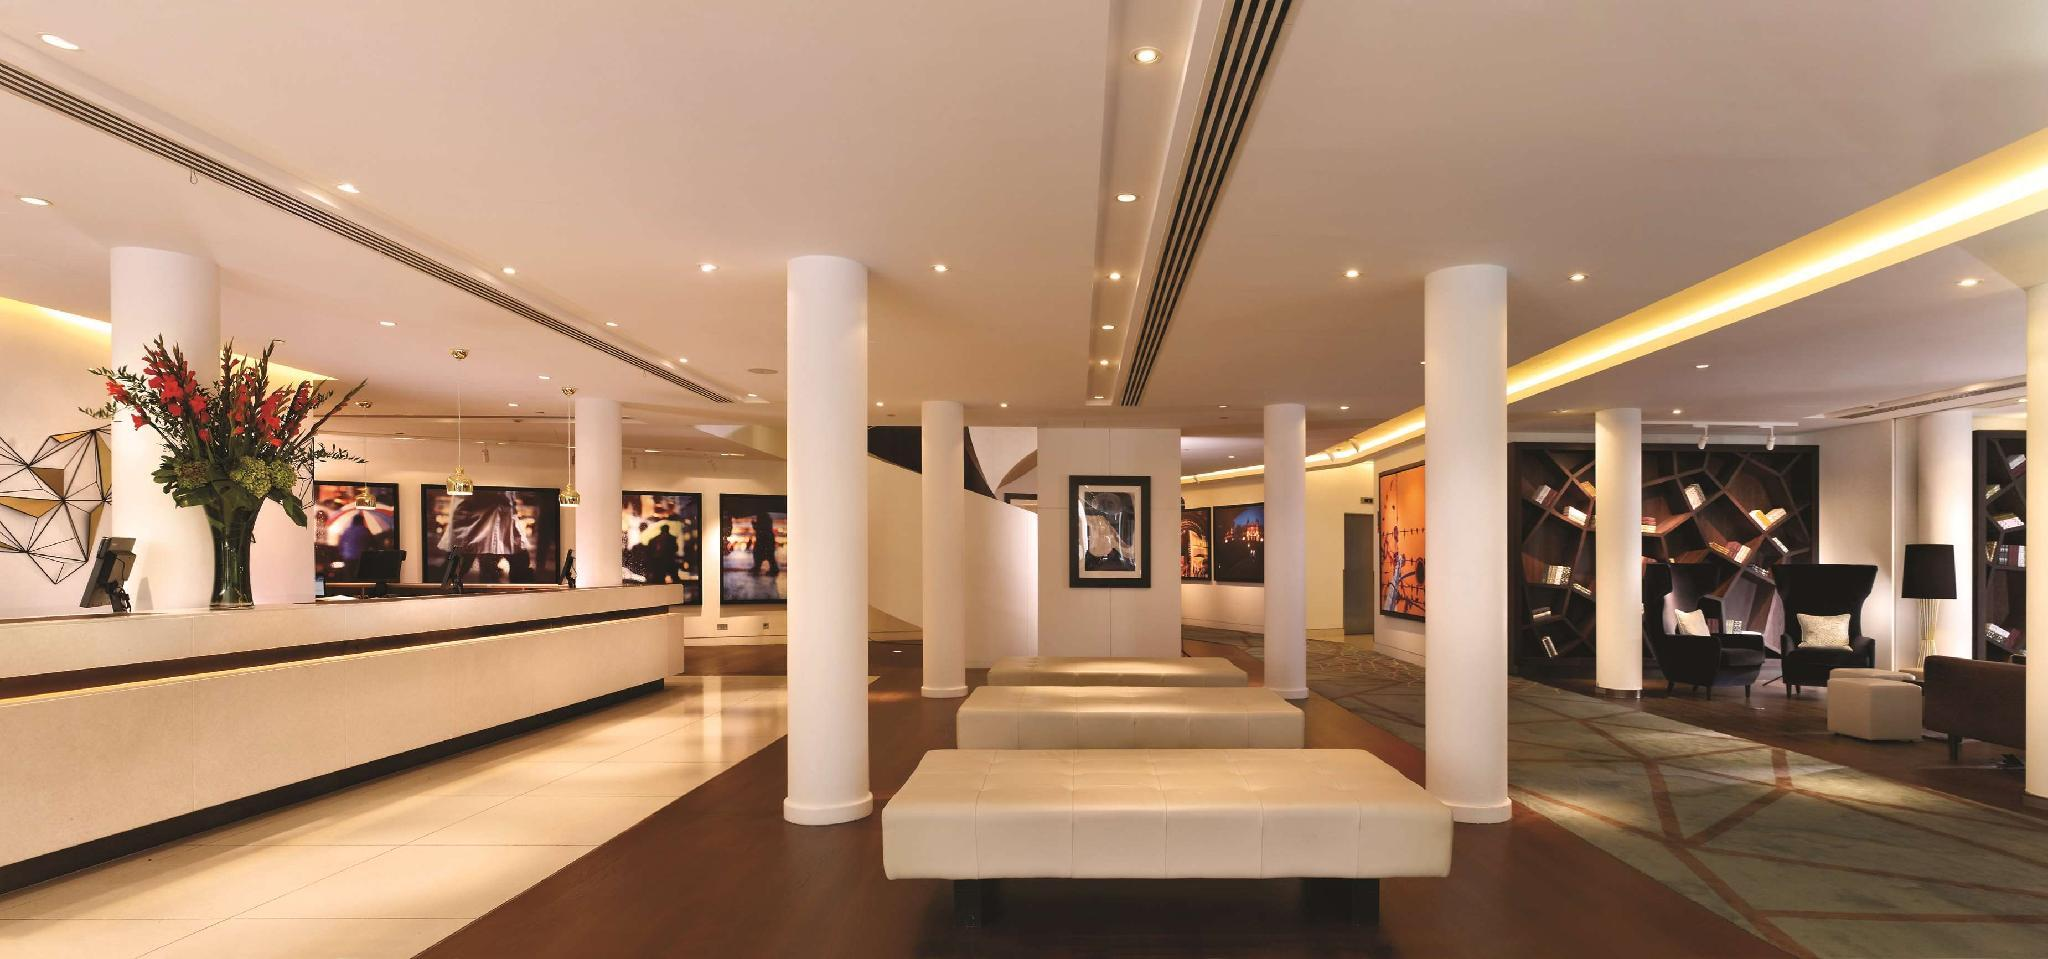 Doubletree By Hilton Hotel London Westminster In United